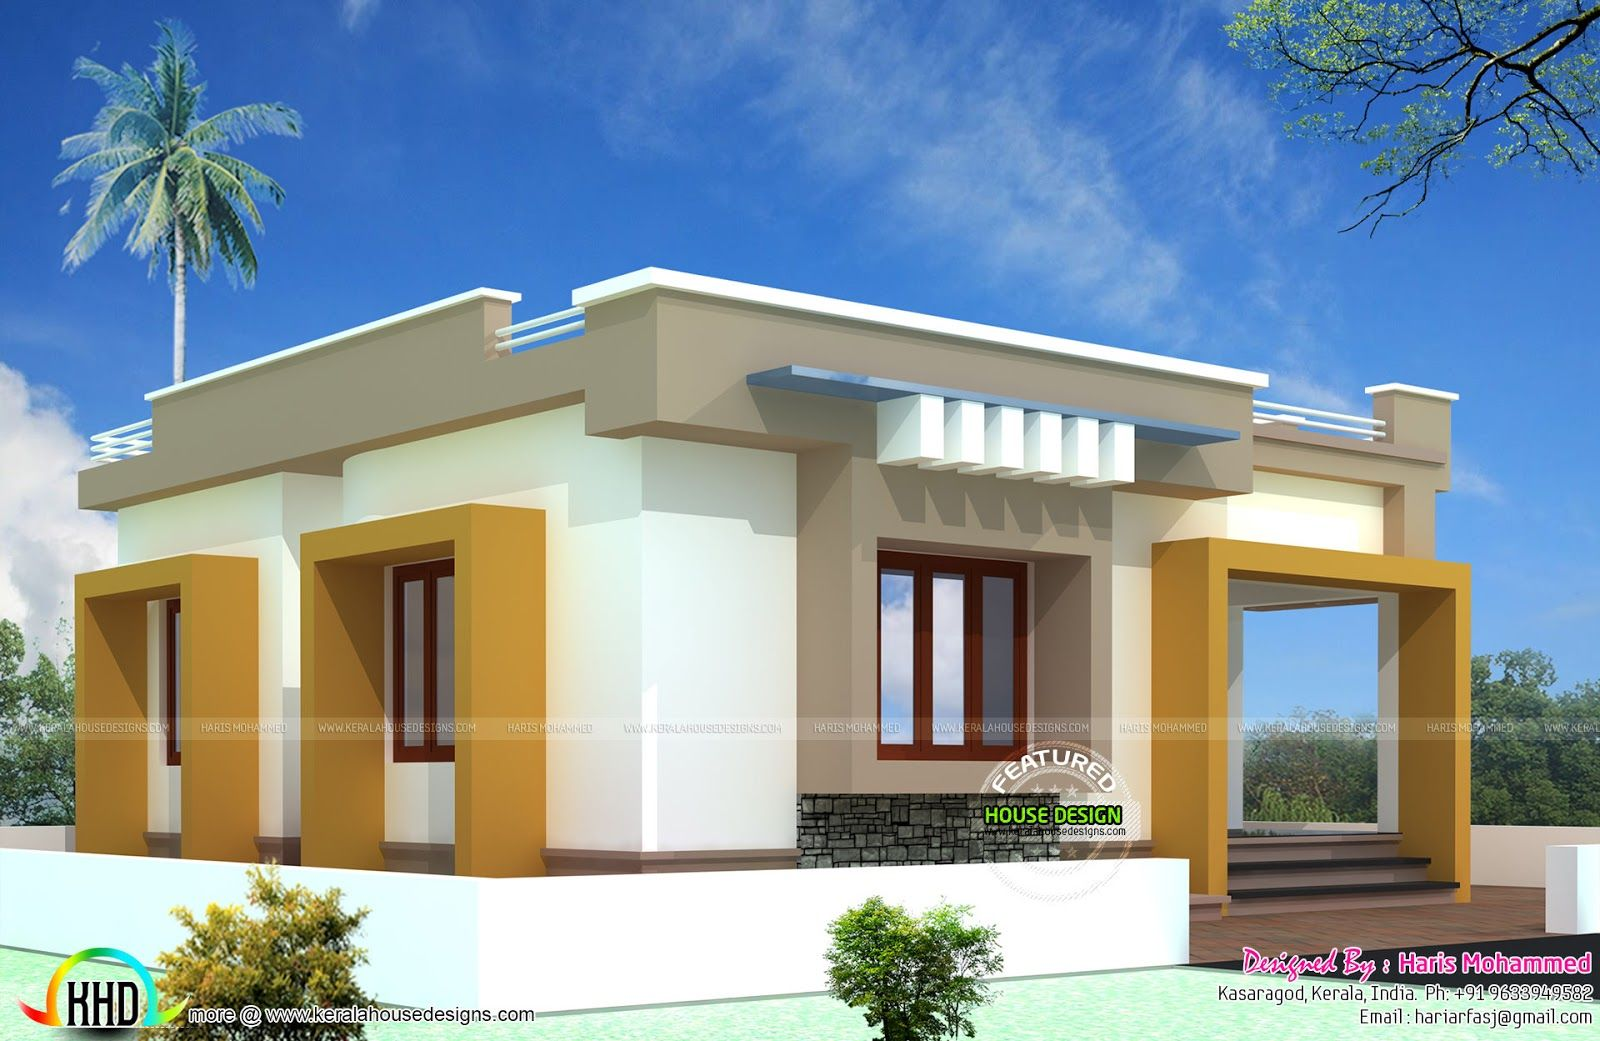 Lakhs Budget Smallbudget Single Floor House In An Area Of 812 Square Feet  By Haris Mohammed, Kasaragod, Kerala.